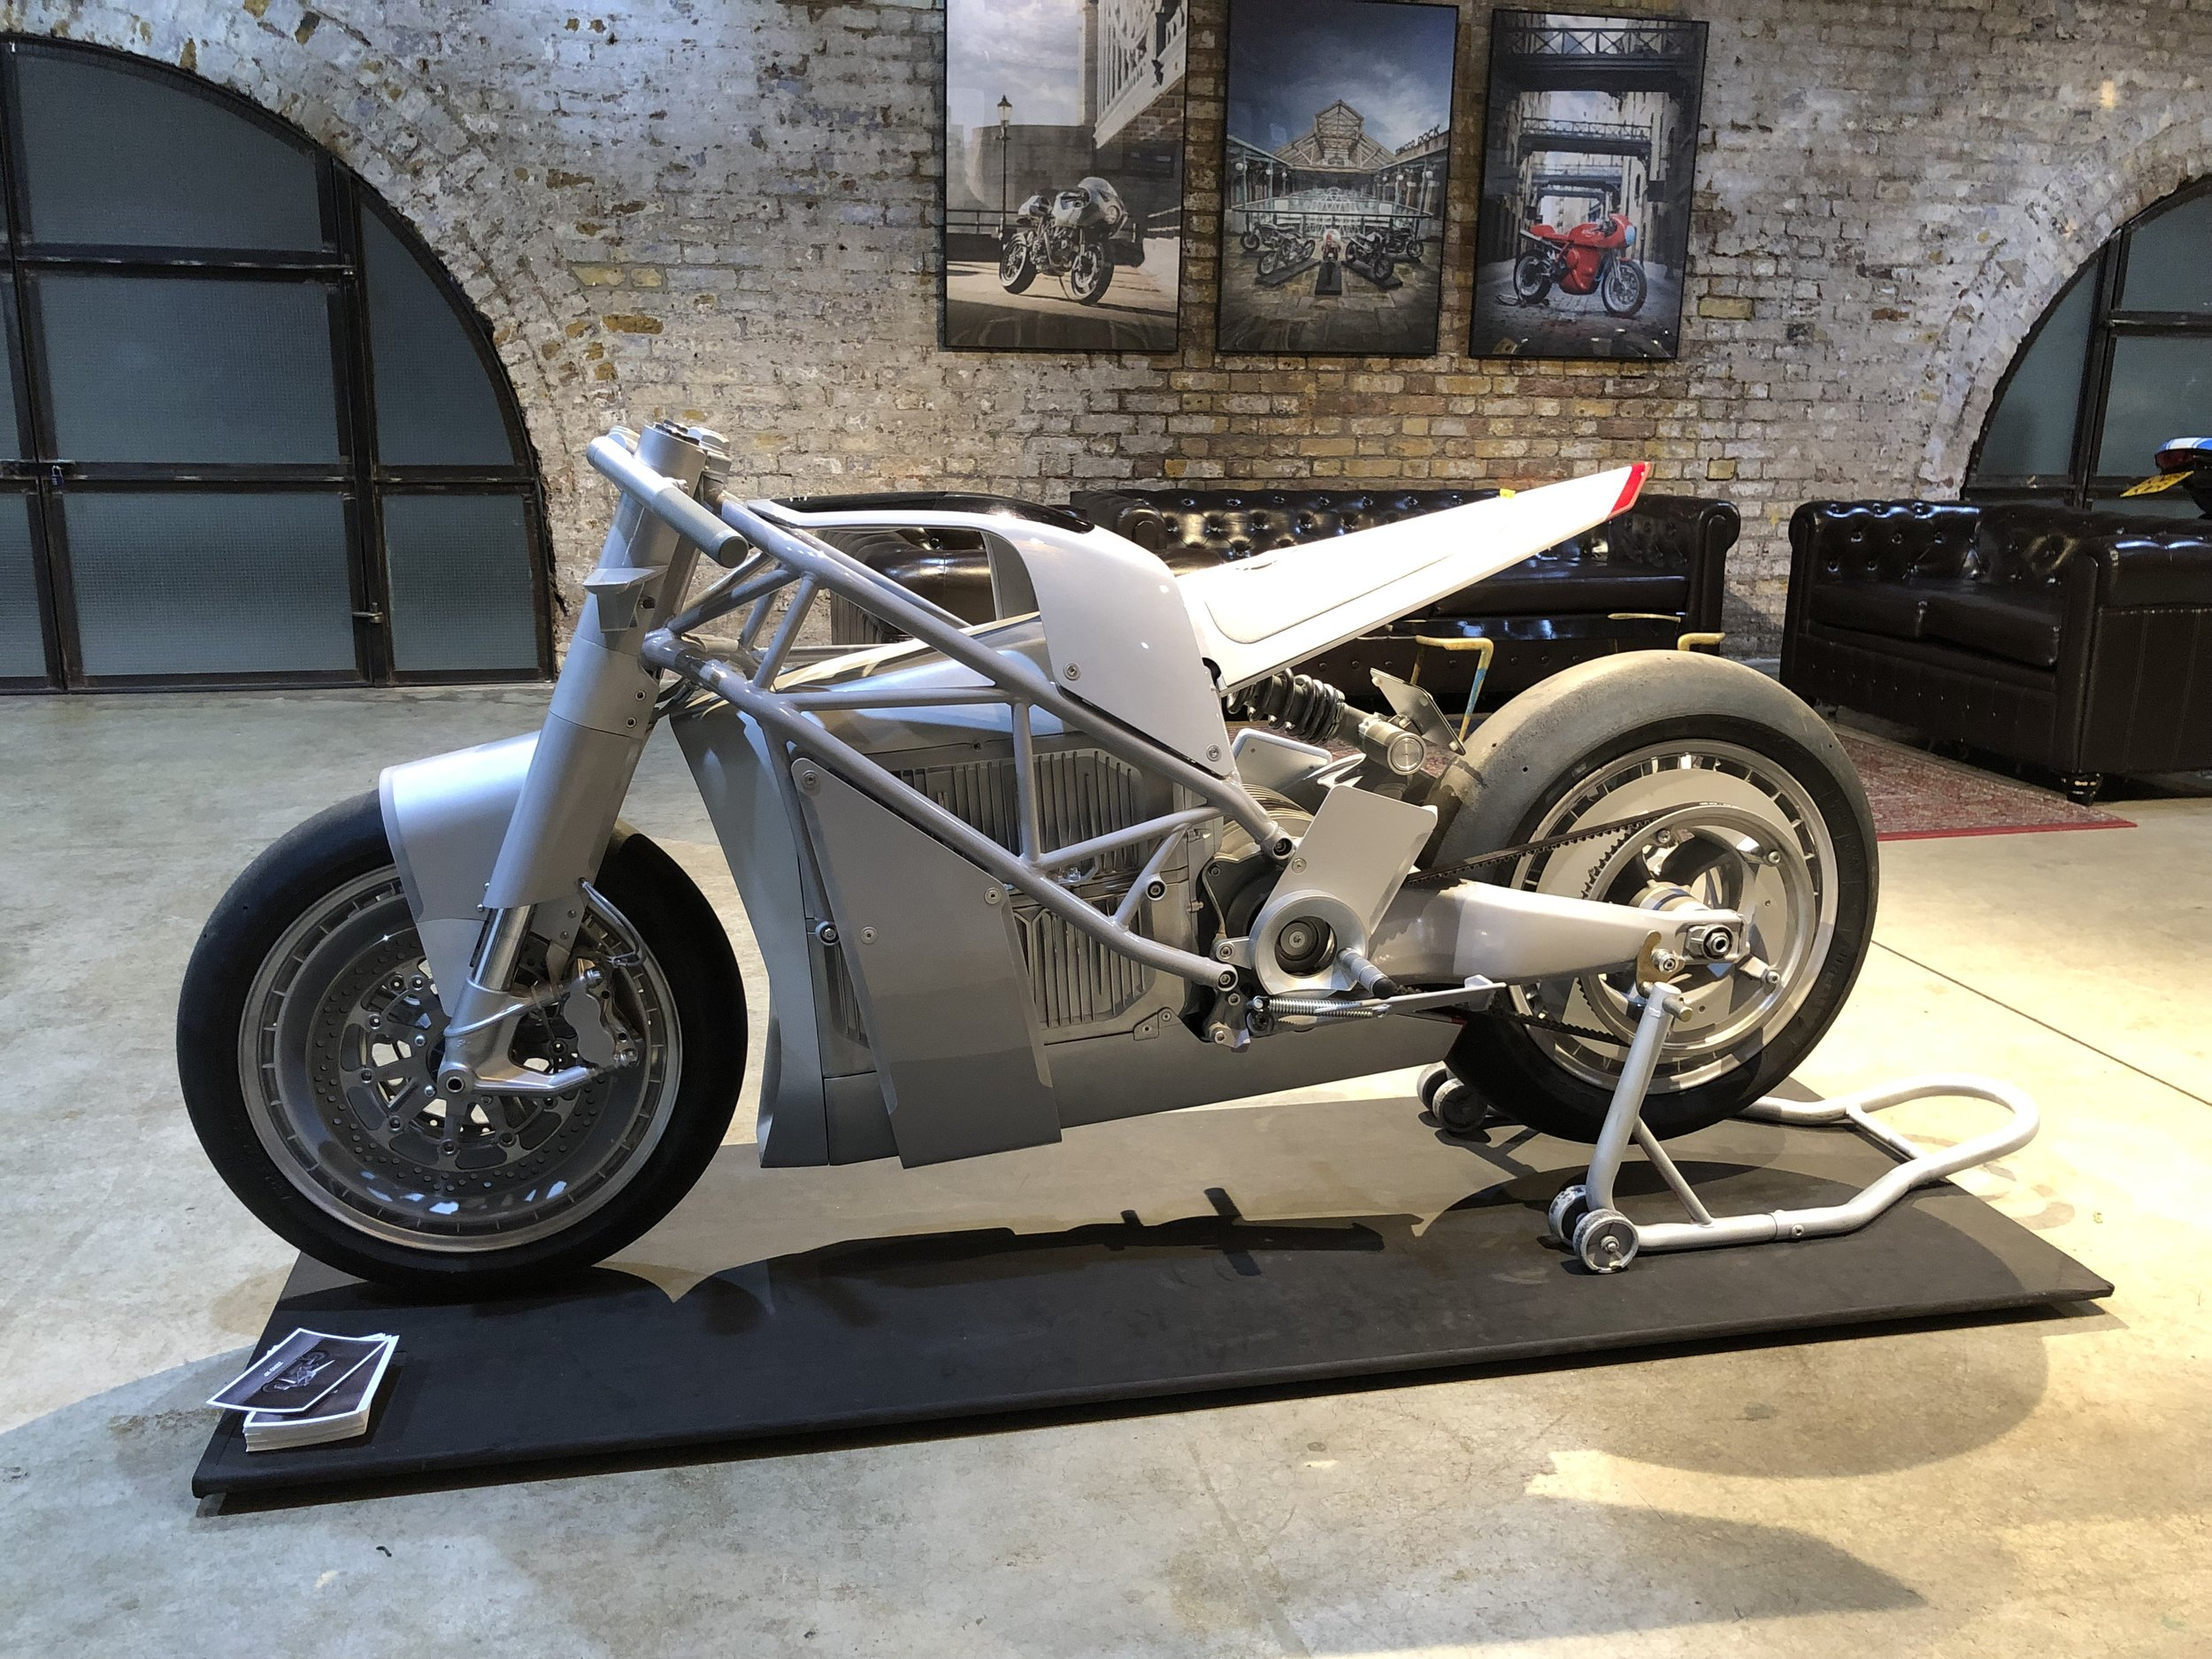 casual snob - bikeshed - untilted motorcycles - Zero XP 12.JPG